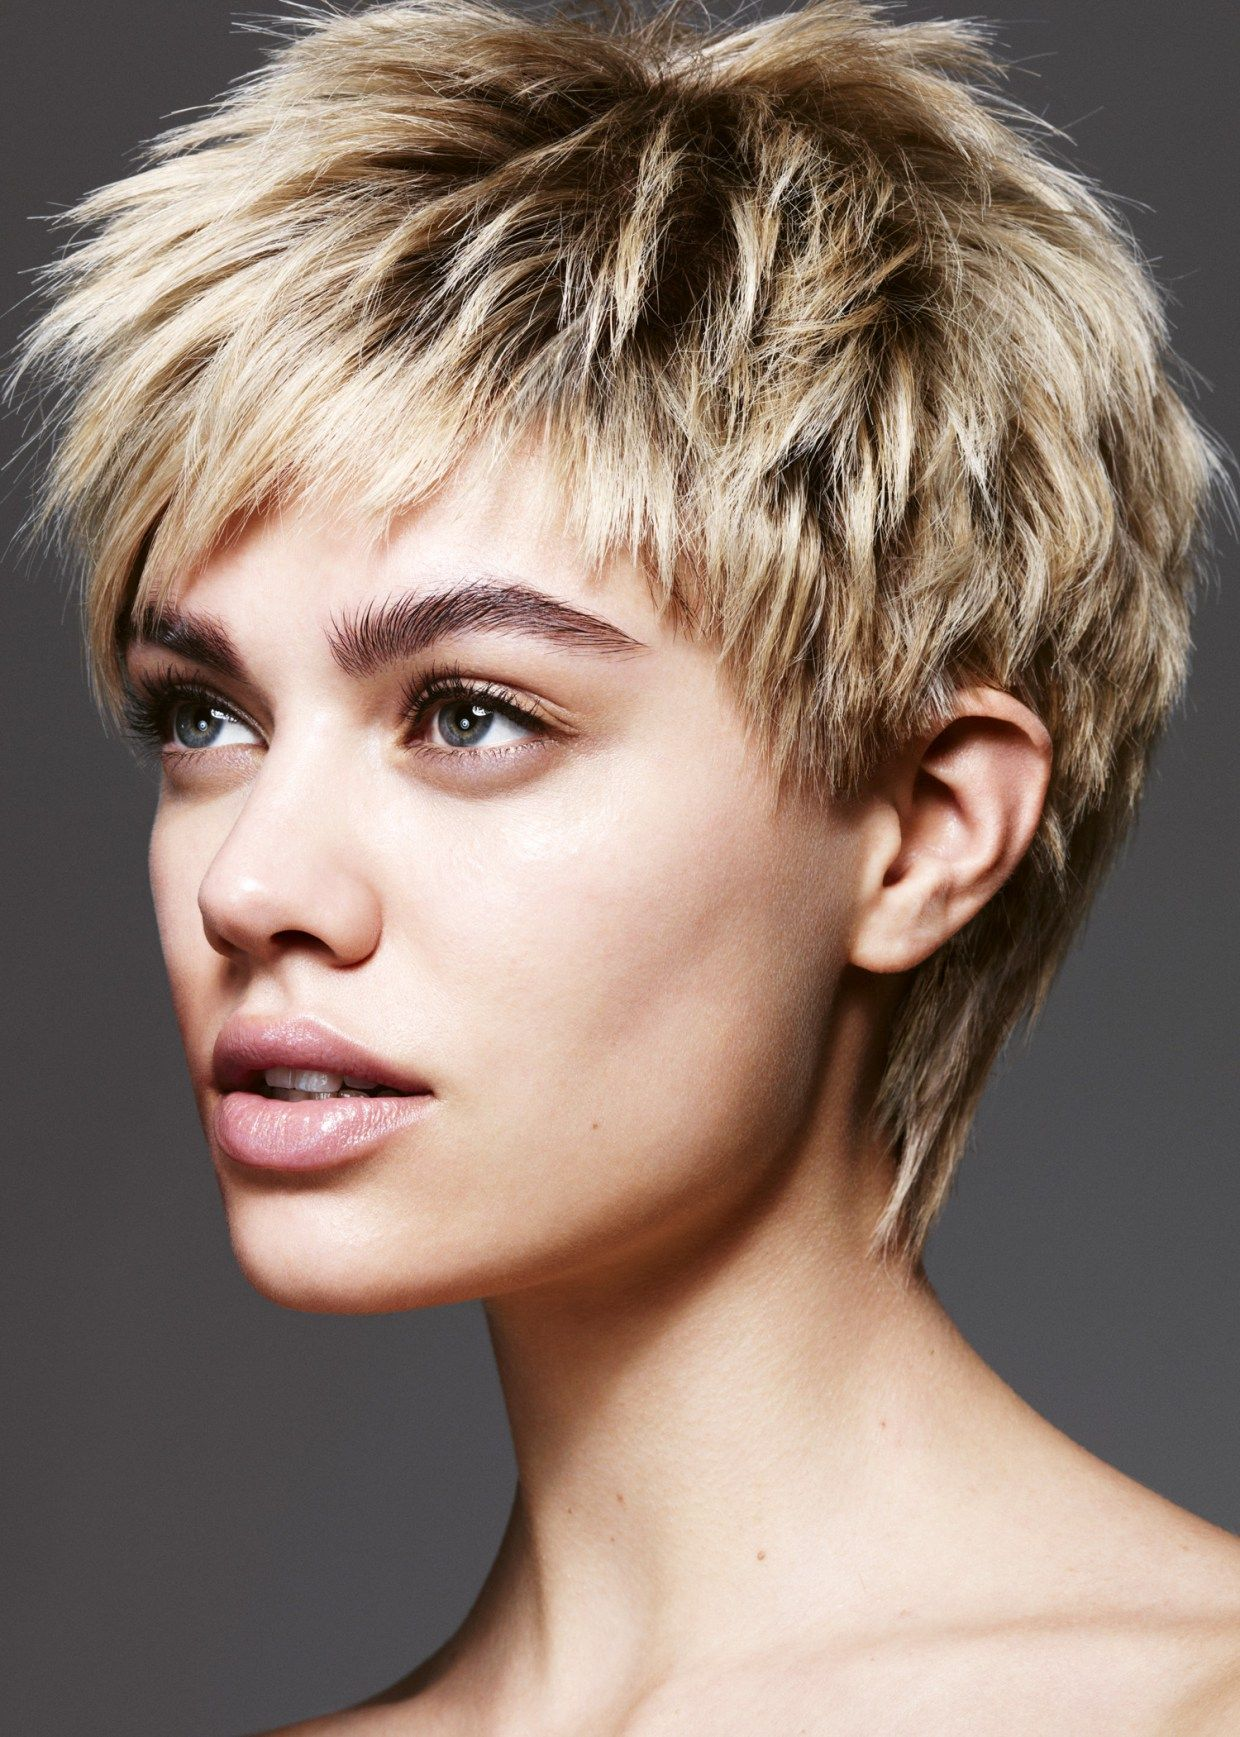 Short textured hairstyles hair pinterest textured hairstyles